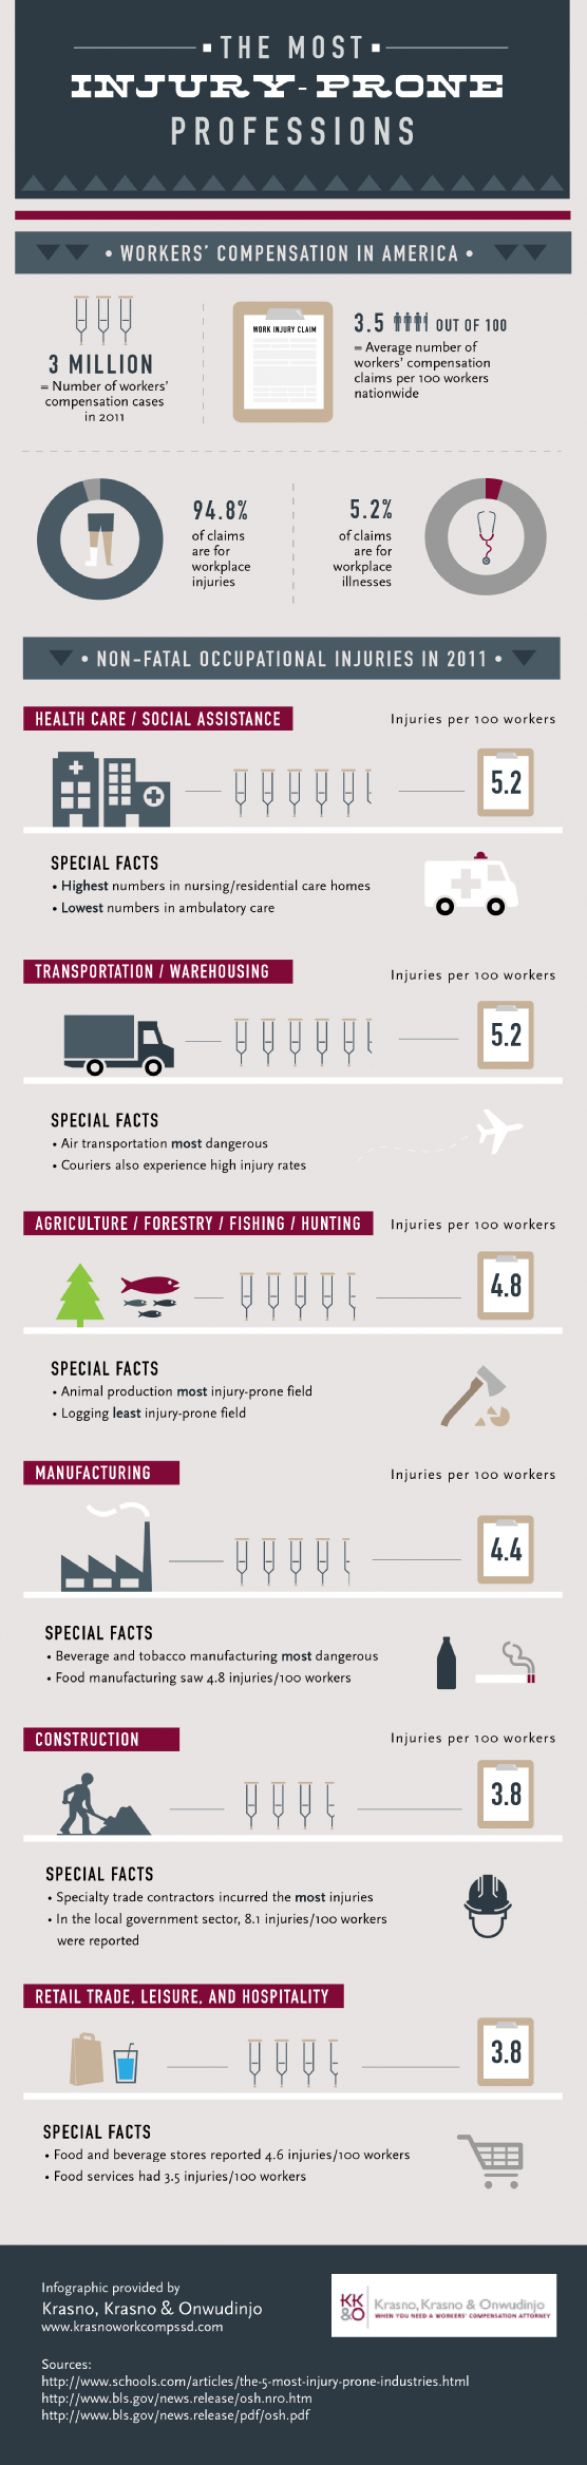 Best Formwork  Scaffolding Images On   Infographic